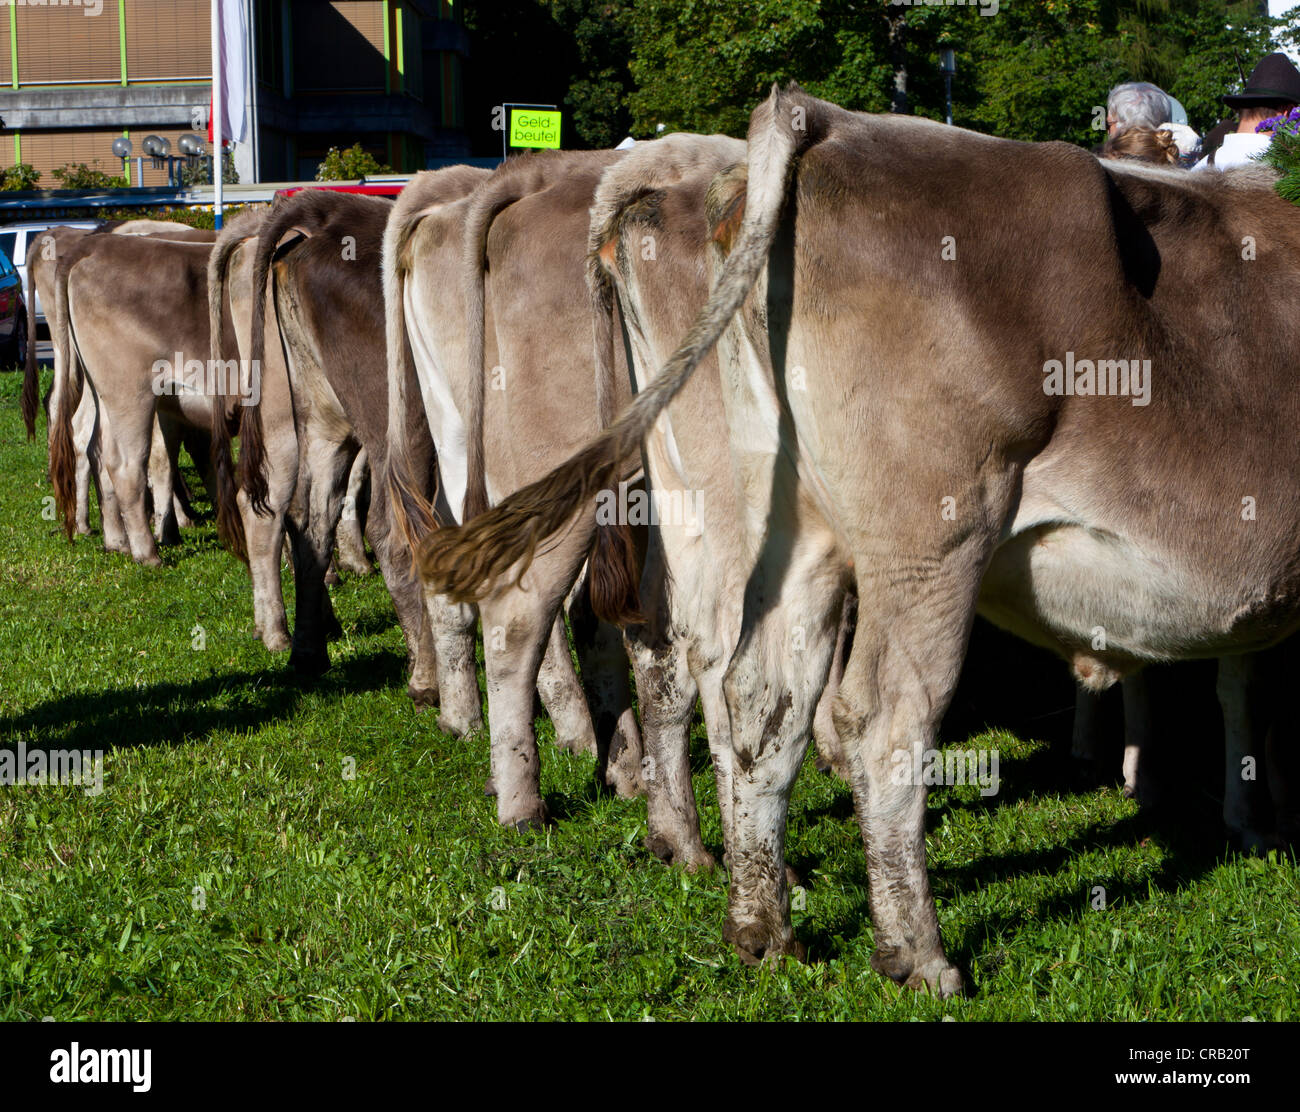 Cows waiting to be inspected and sold, ceremonial driving down of cattle from the mountain pastures, Pfronten - Stock Image